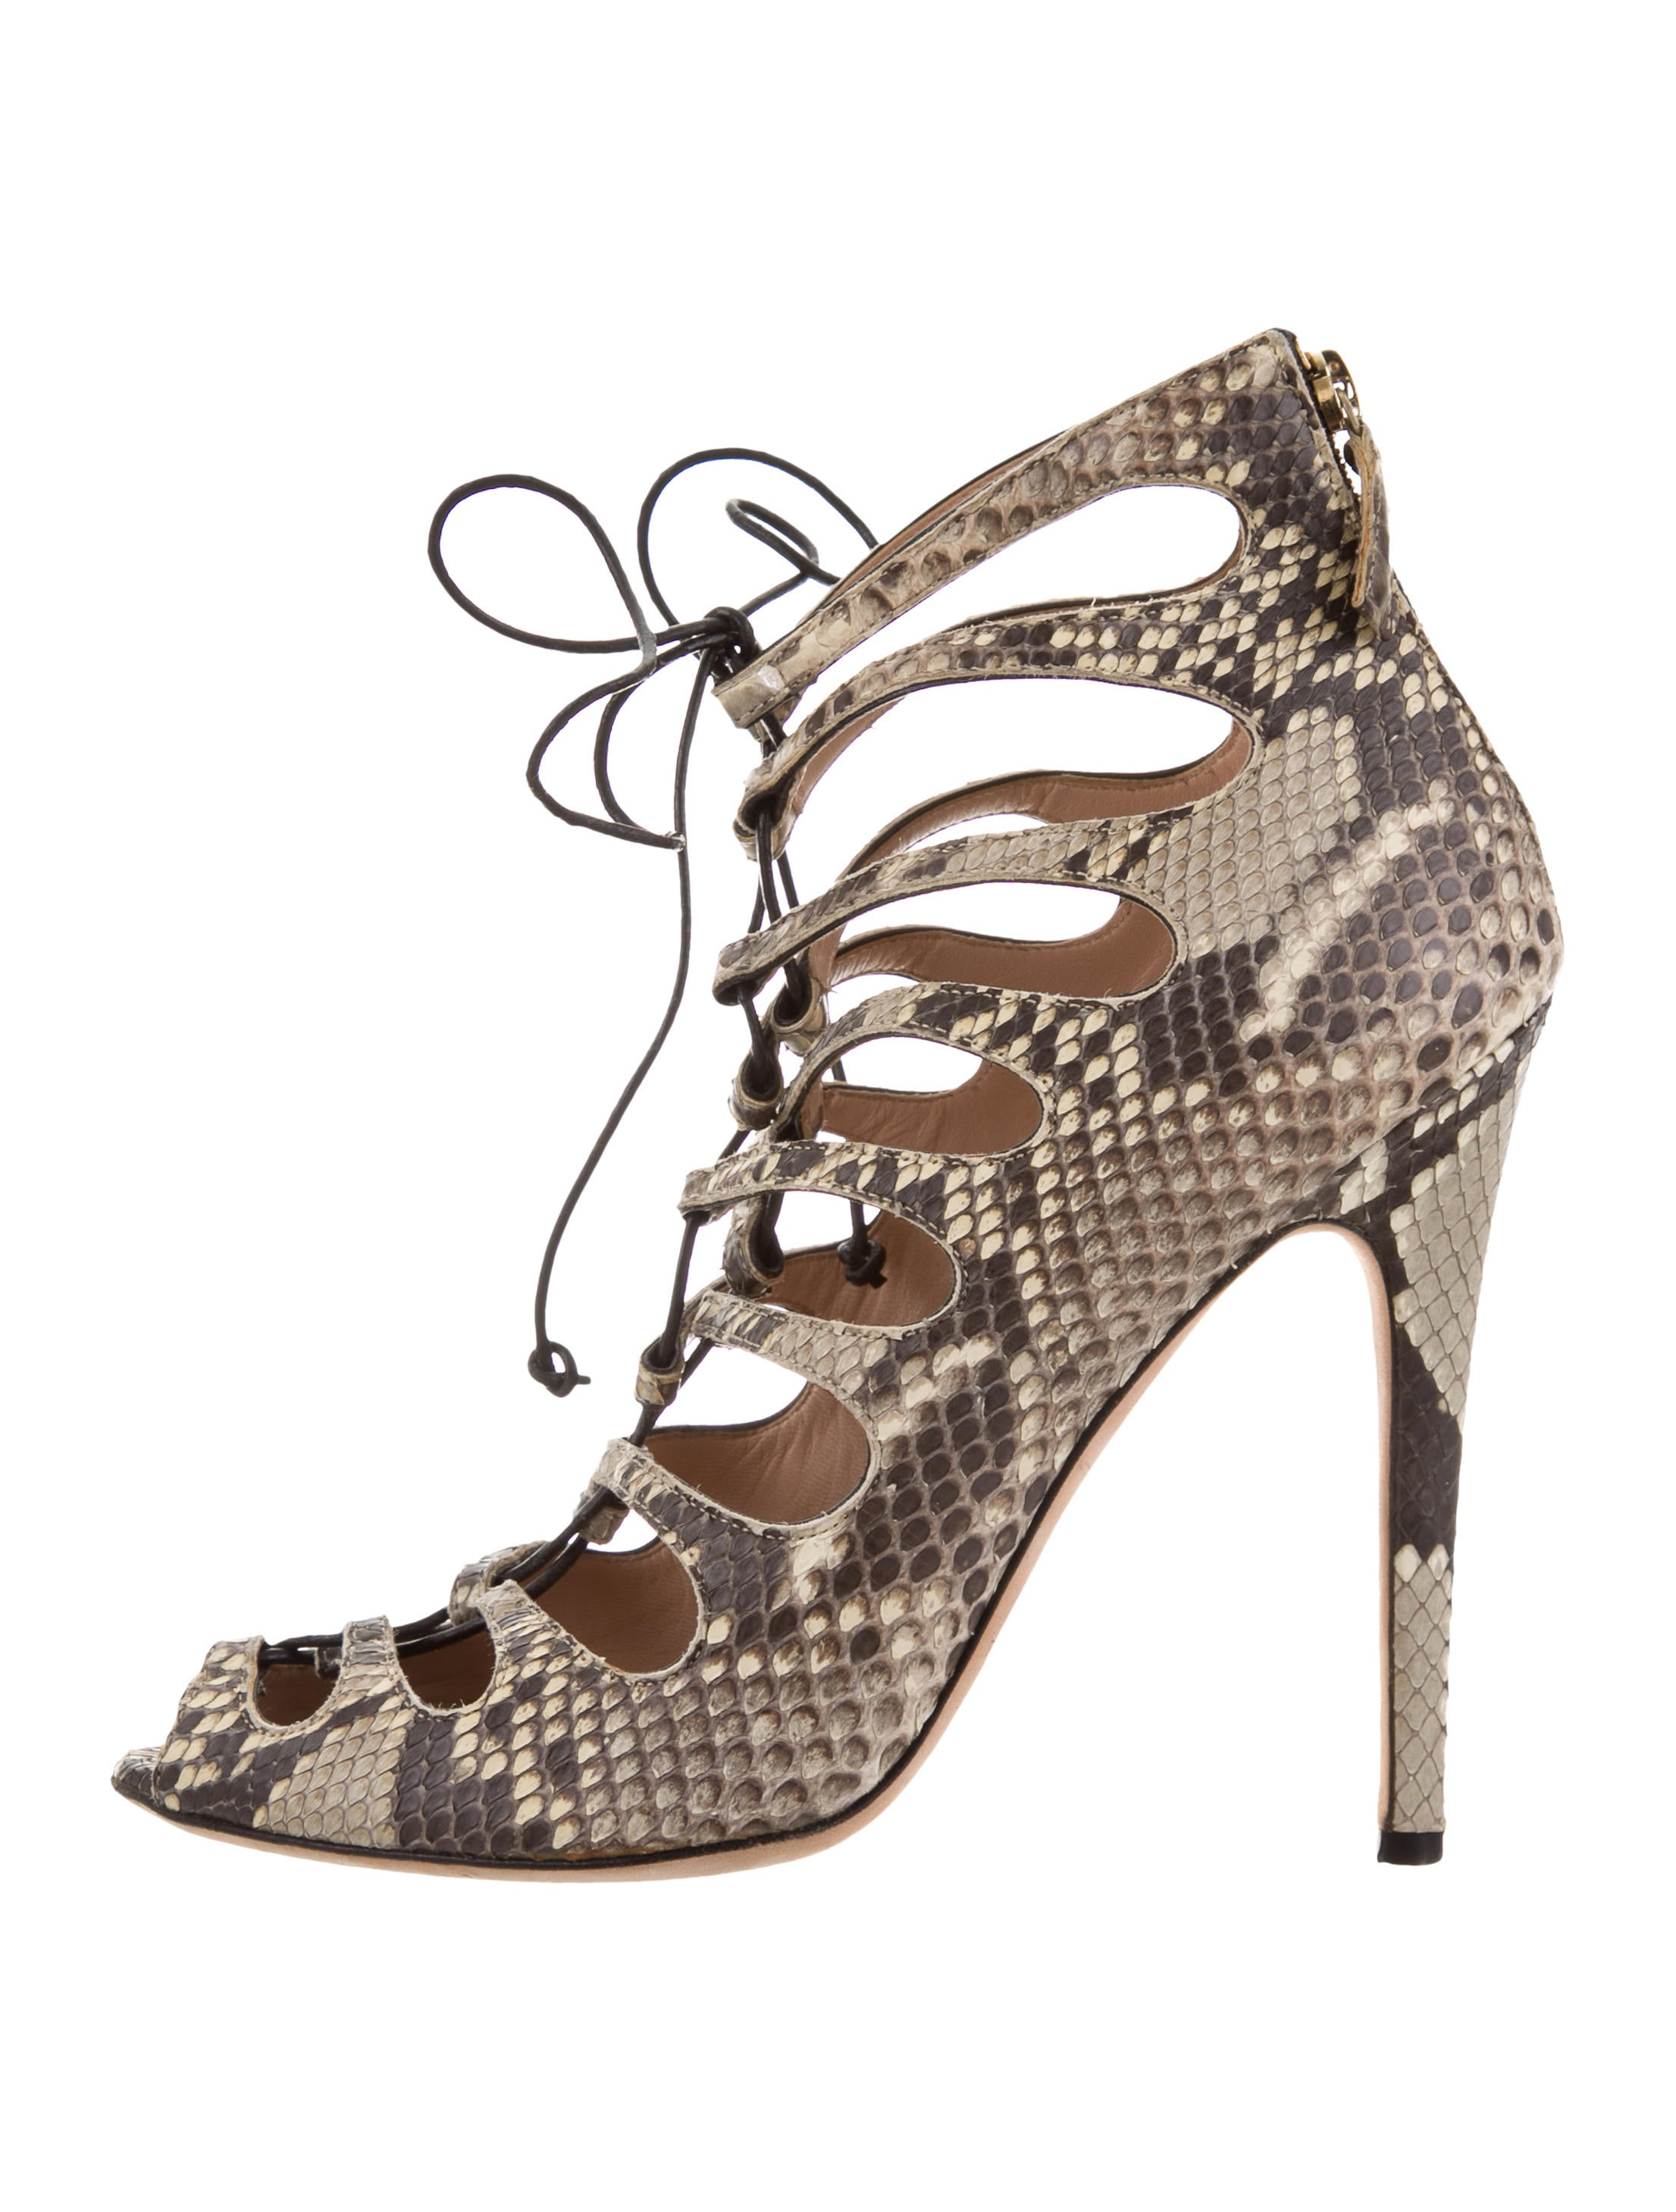 Giambattista Valli Snakeskin Caged Sandals cheap 2015 new newest for sale clearance clearance uQQCw9tqKA